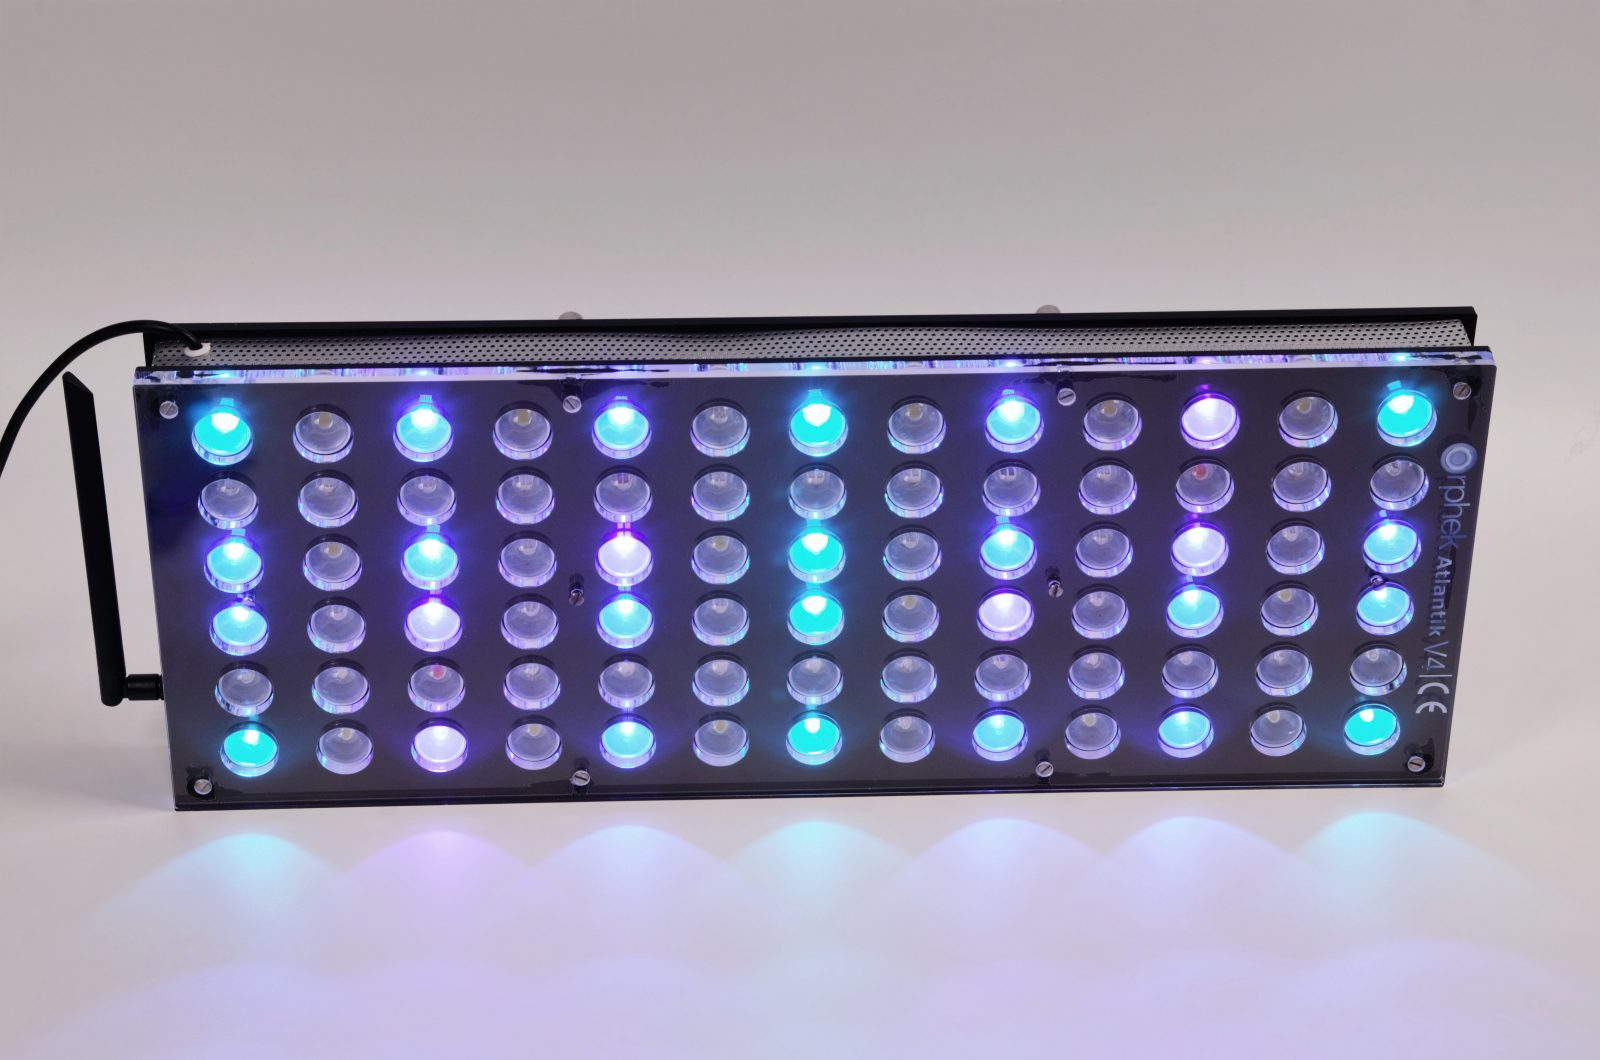 Orphek-Aquarium-LED-Lighting-Reef-Atlantik-V4-אור בערוץ 2